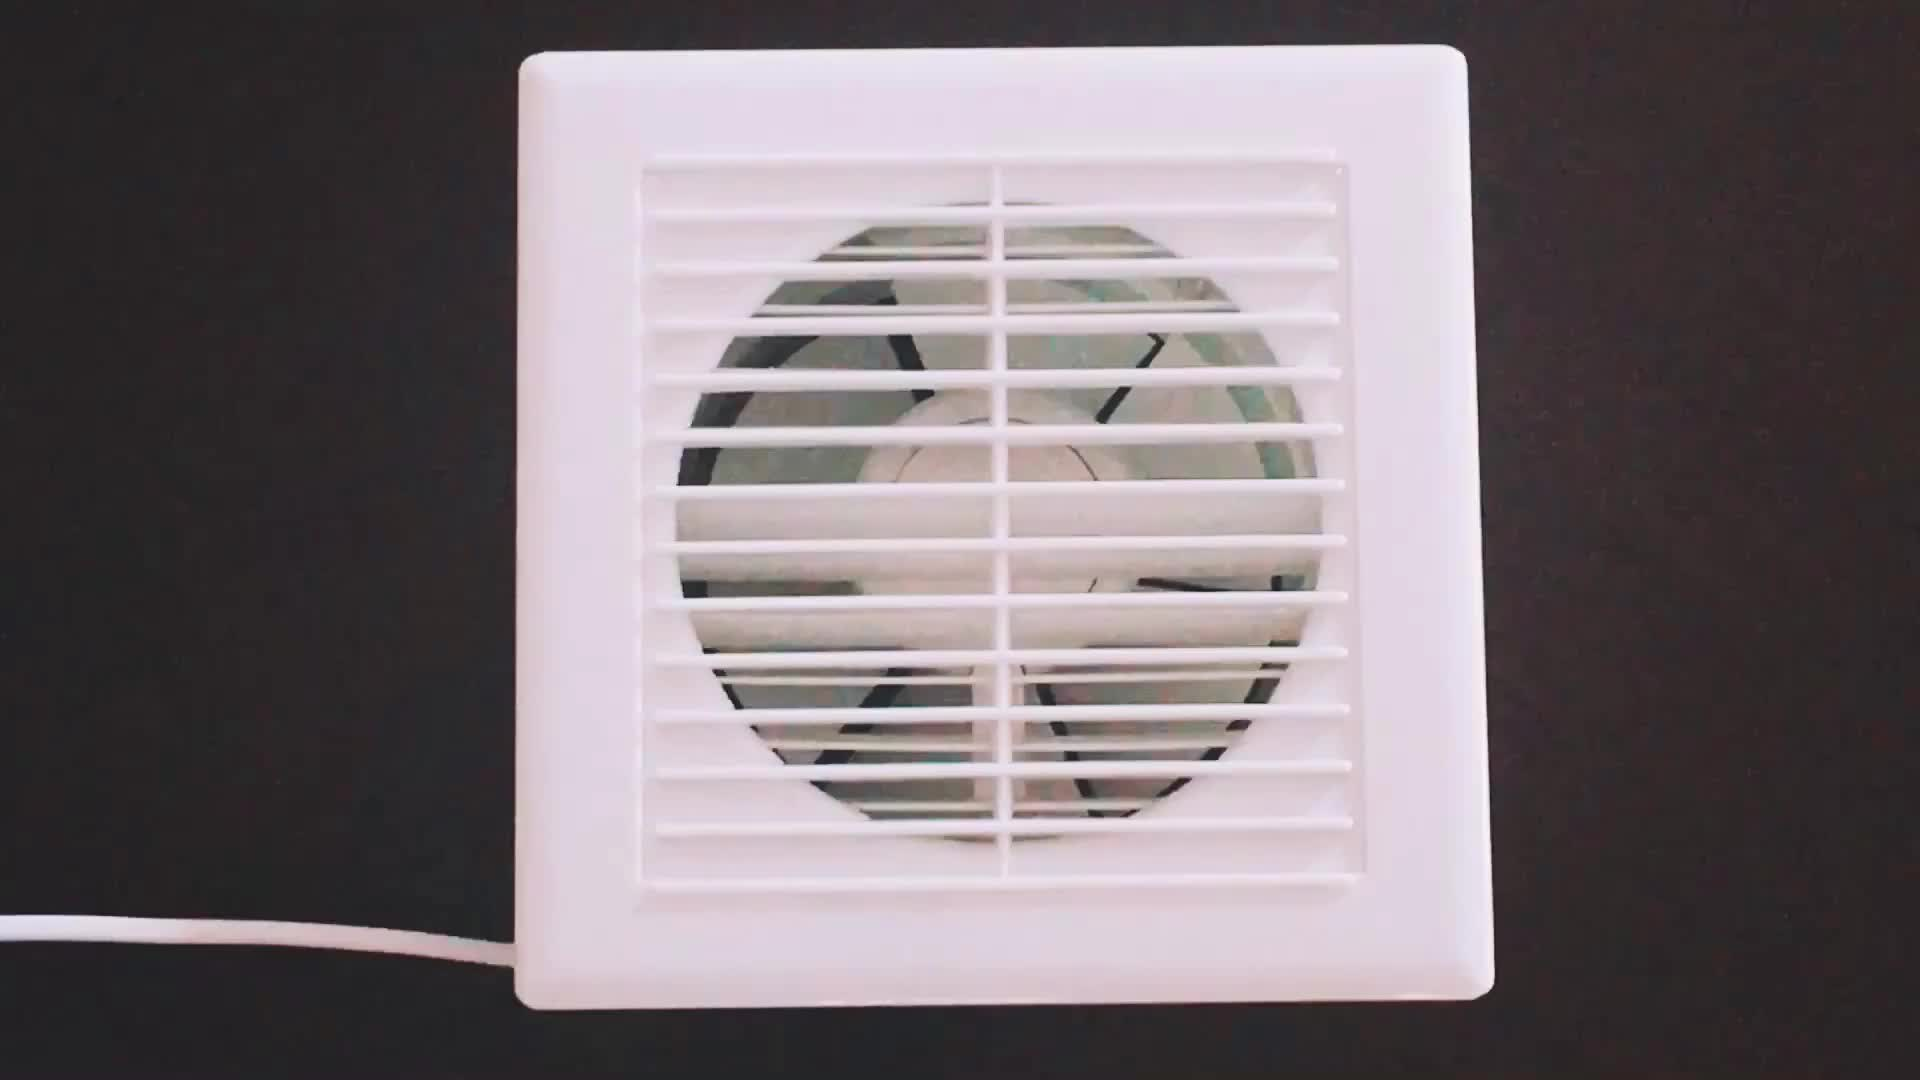 Kitchen Exhaust Fan Small Mini Plastic Factory Small Exhaust Fan Kitchen Wall Mount